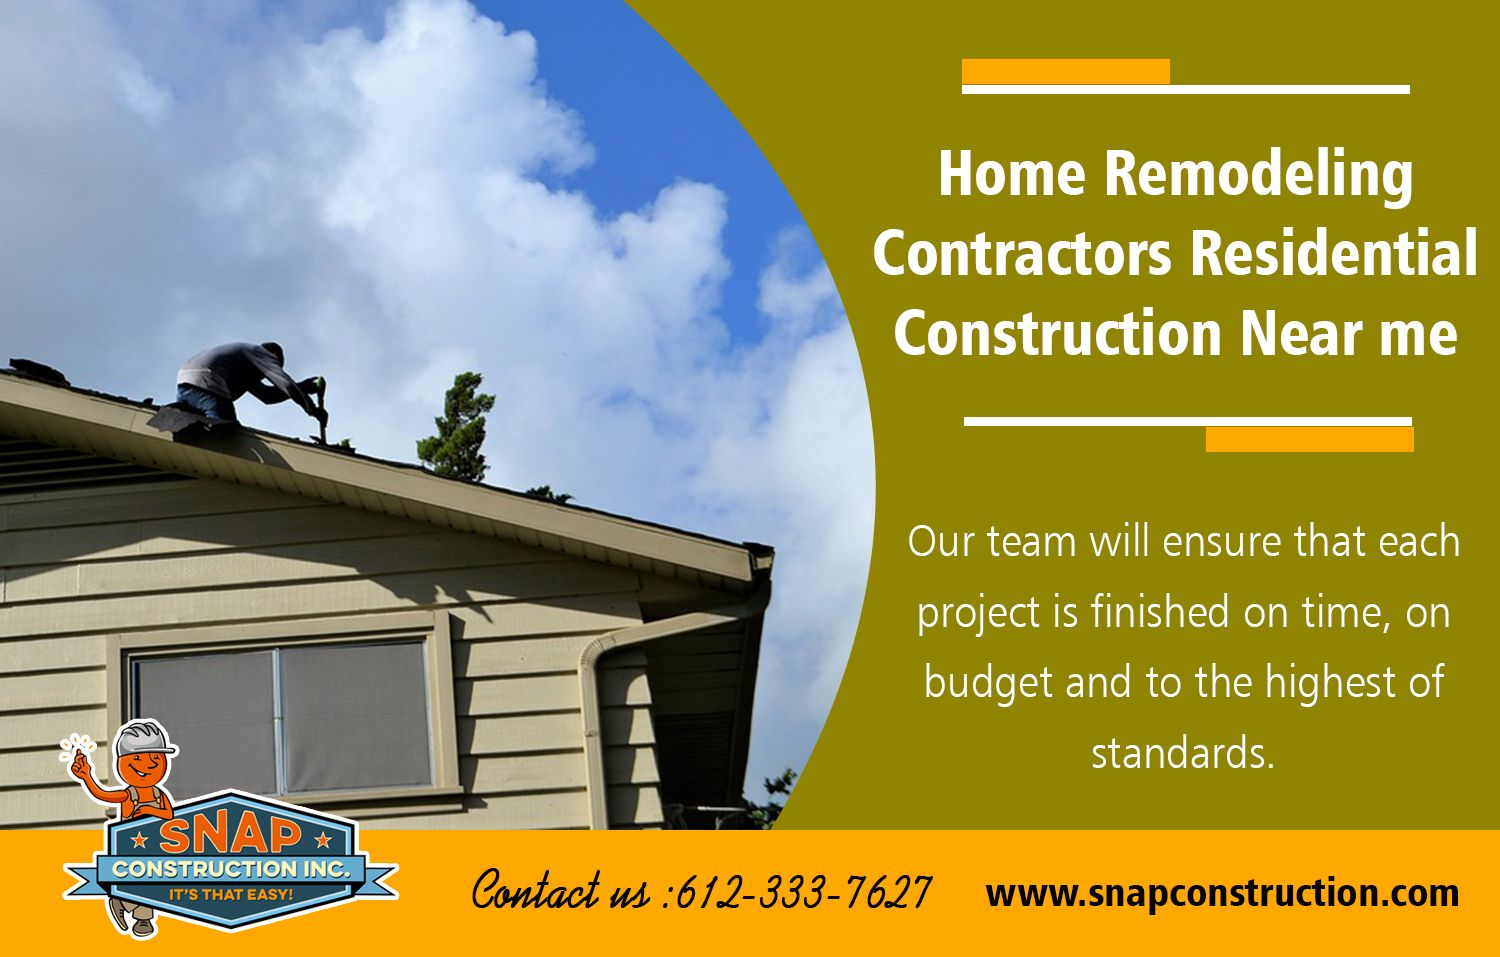 A good Home Remodeling Contractors Residential